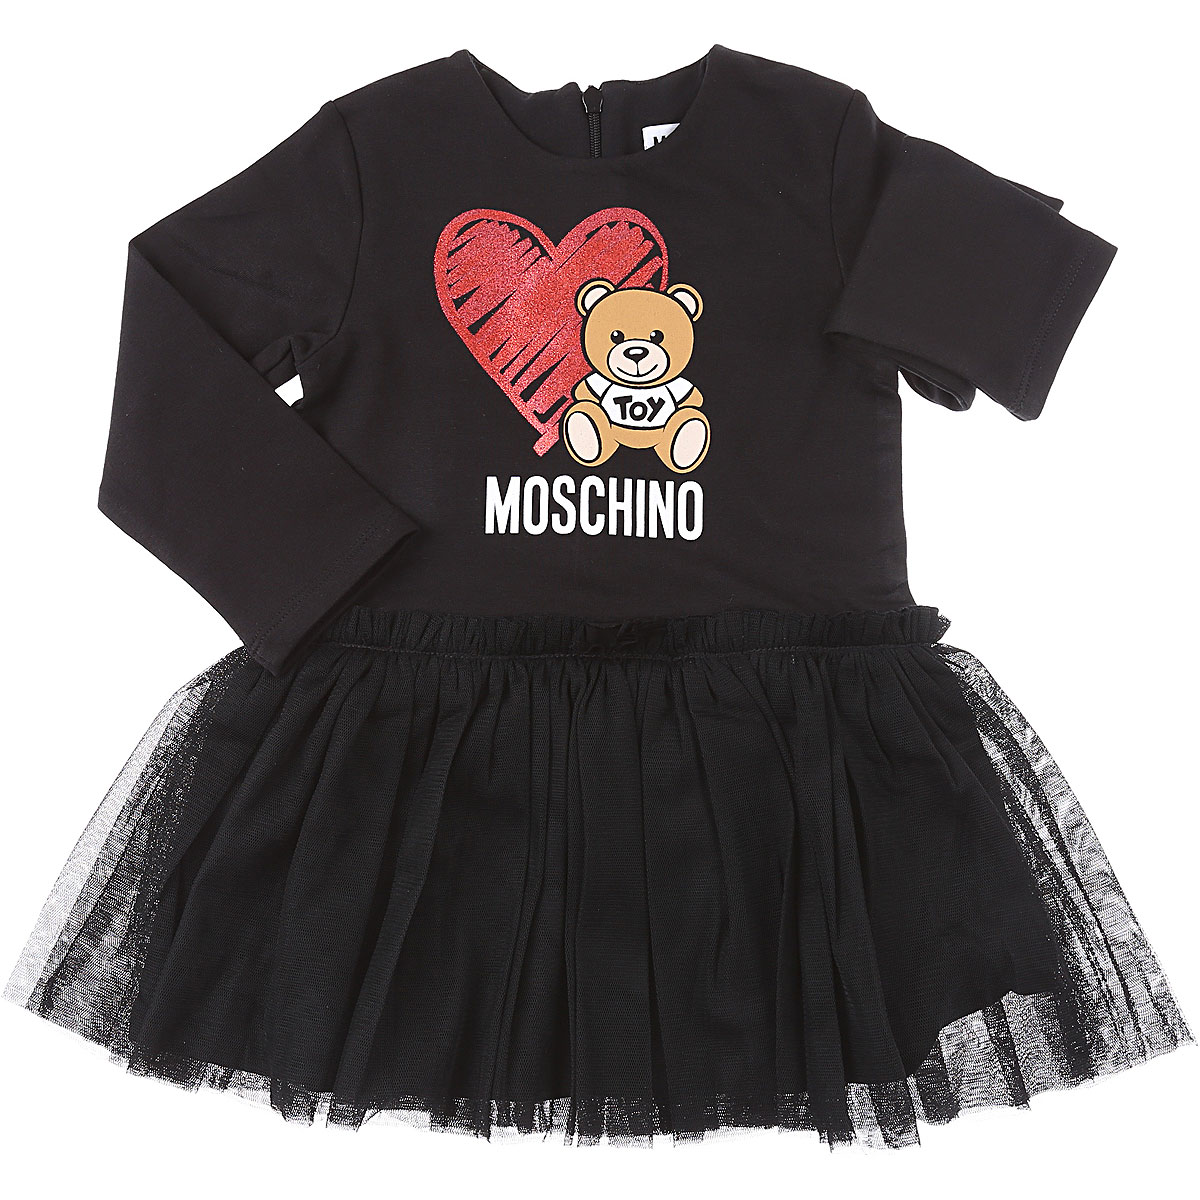 Moschino Baby Dress for Girls On Sale, Black, Cotton, 2019, 12M 18M 2Y 3Y 9M